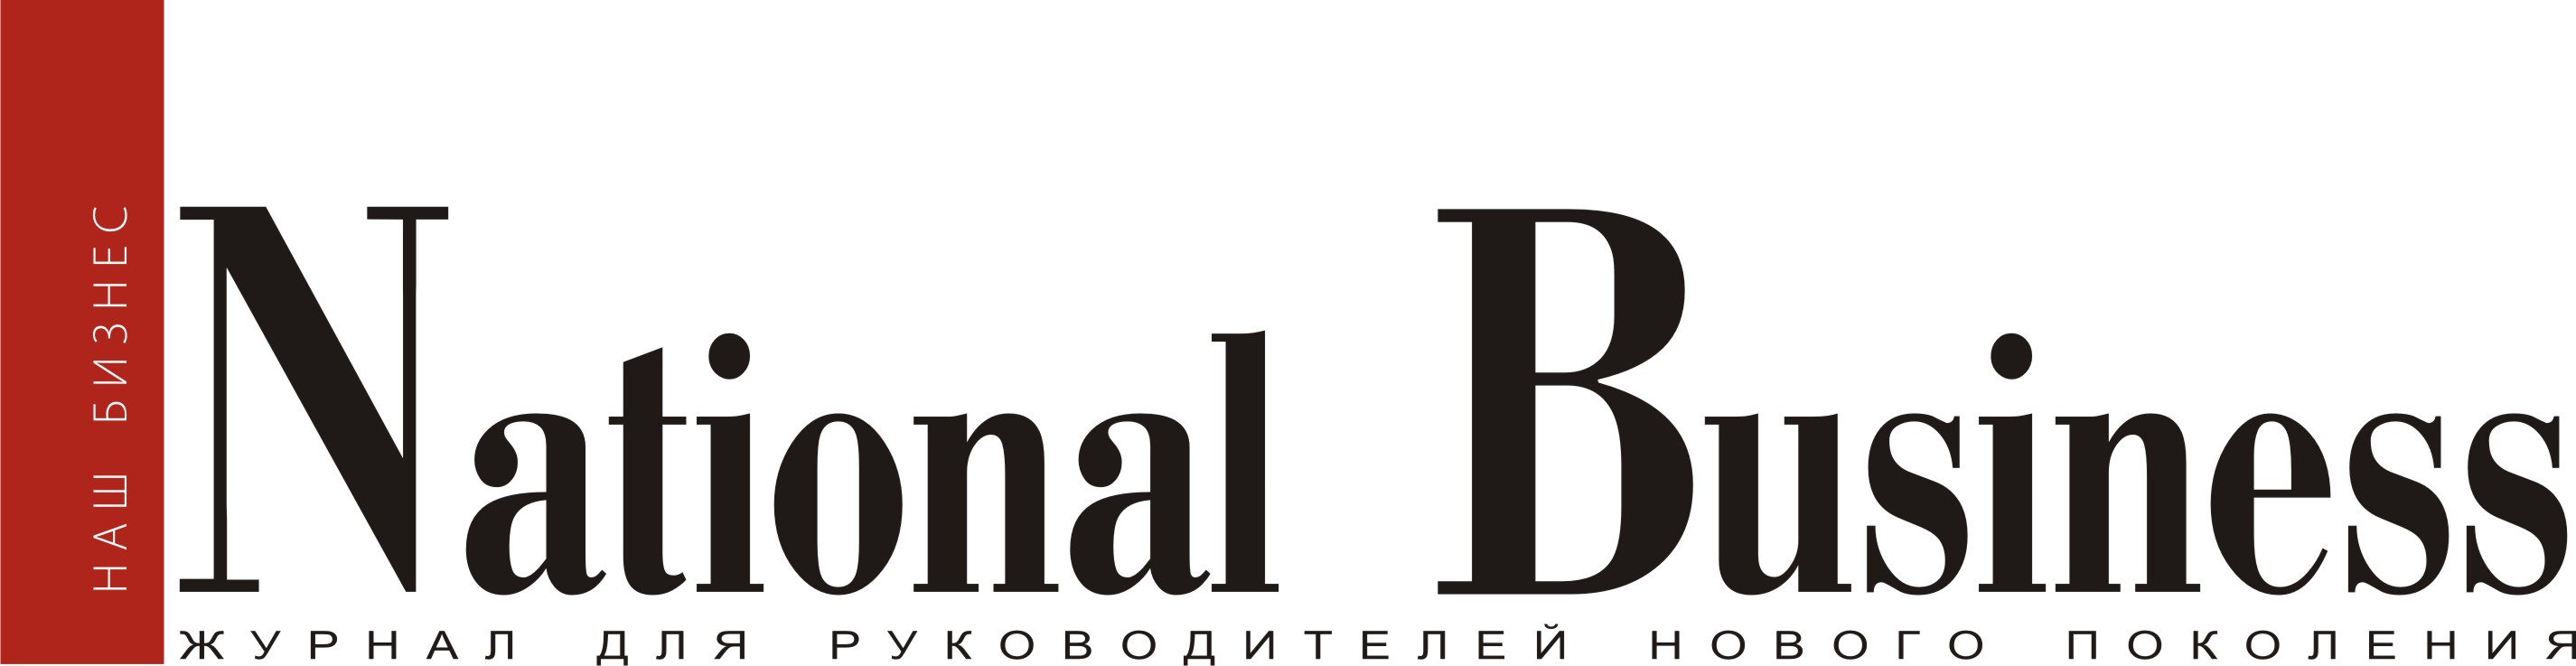 national business system National pension system (nps) is an easily accessible, low-cost, tax-efficient, flexible and portable retirement savings account under the nps, the individual contributes to his retirement account.